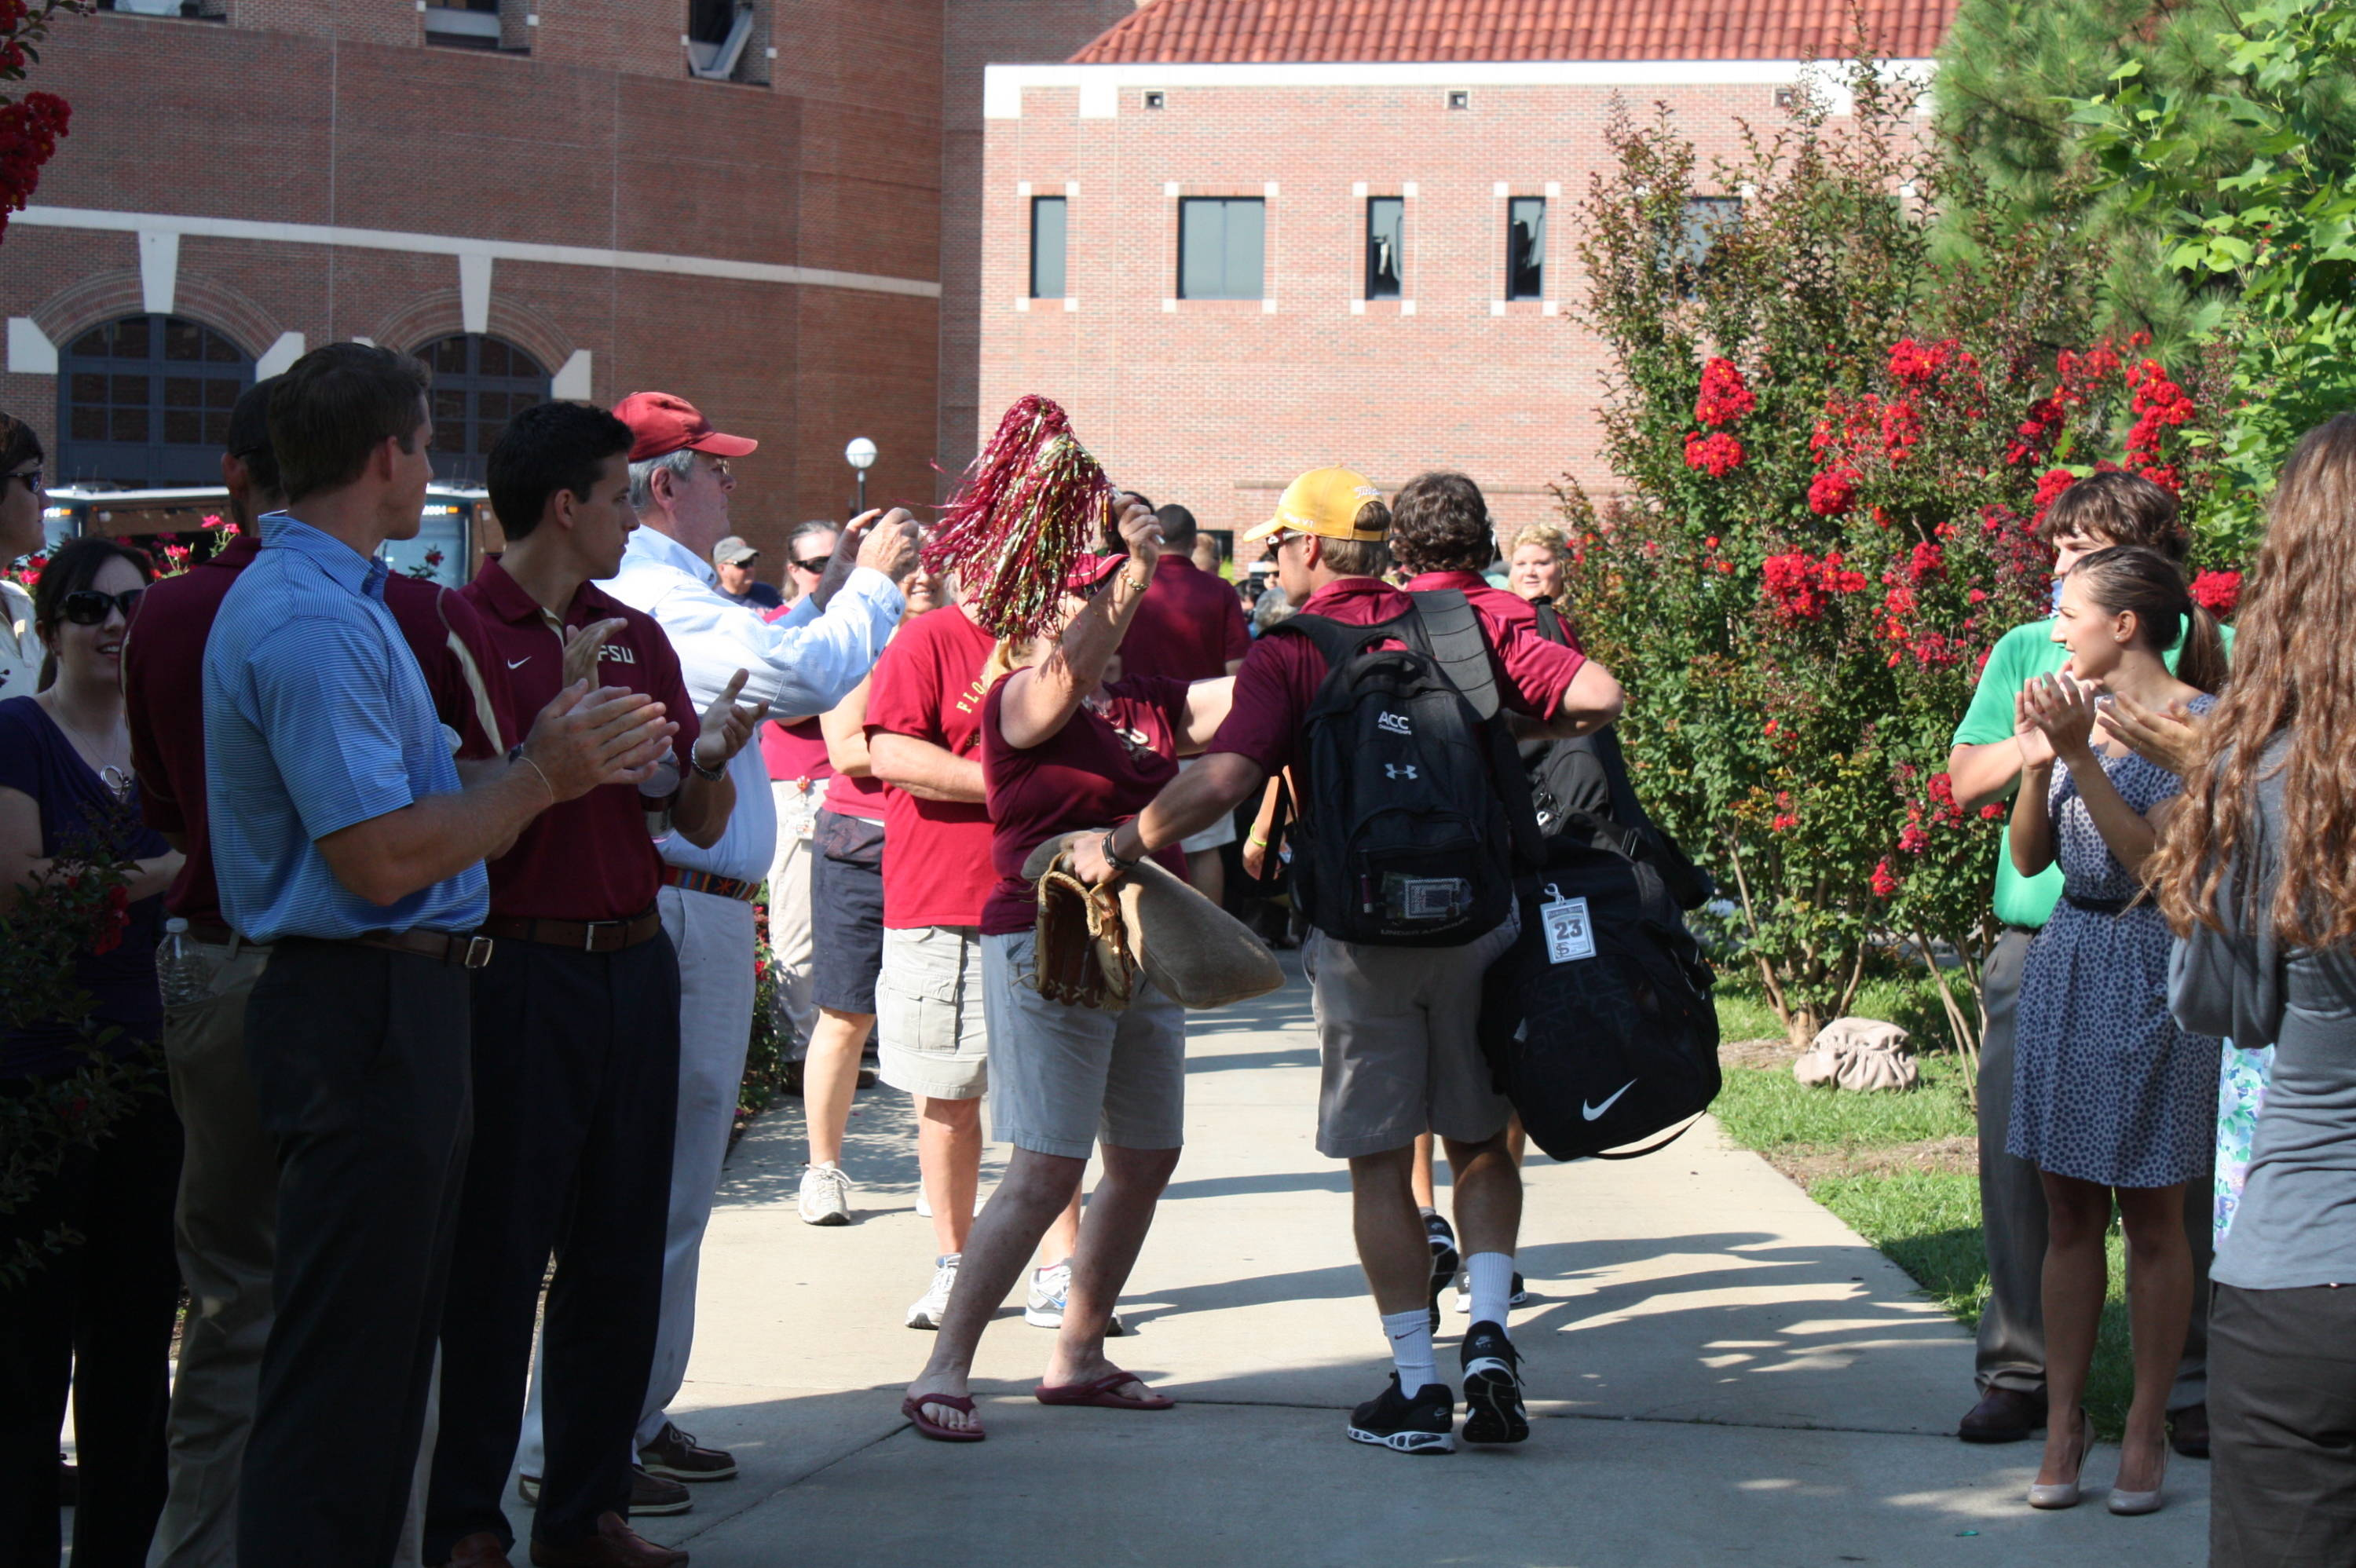 James Ramsey receives a hug from a fan outside Dick Howser Stadium before the team leaves for the airport.